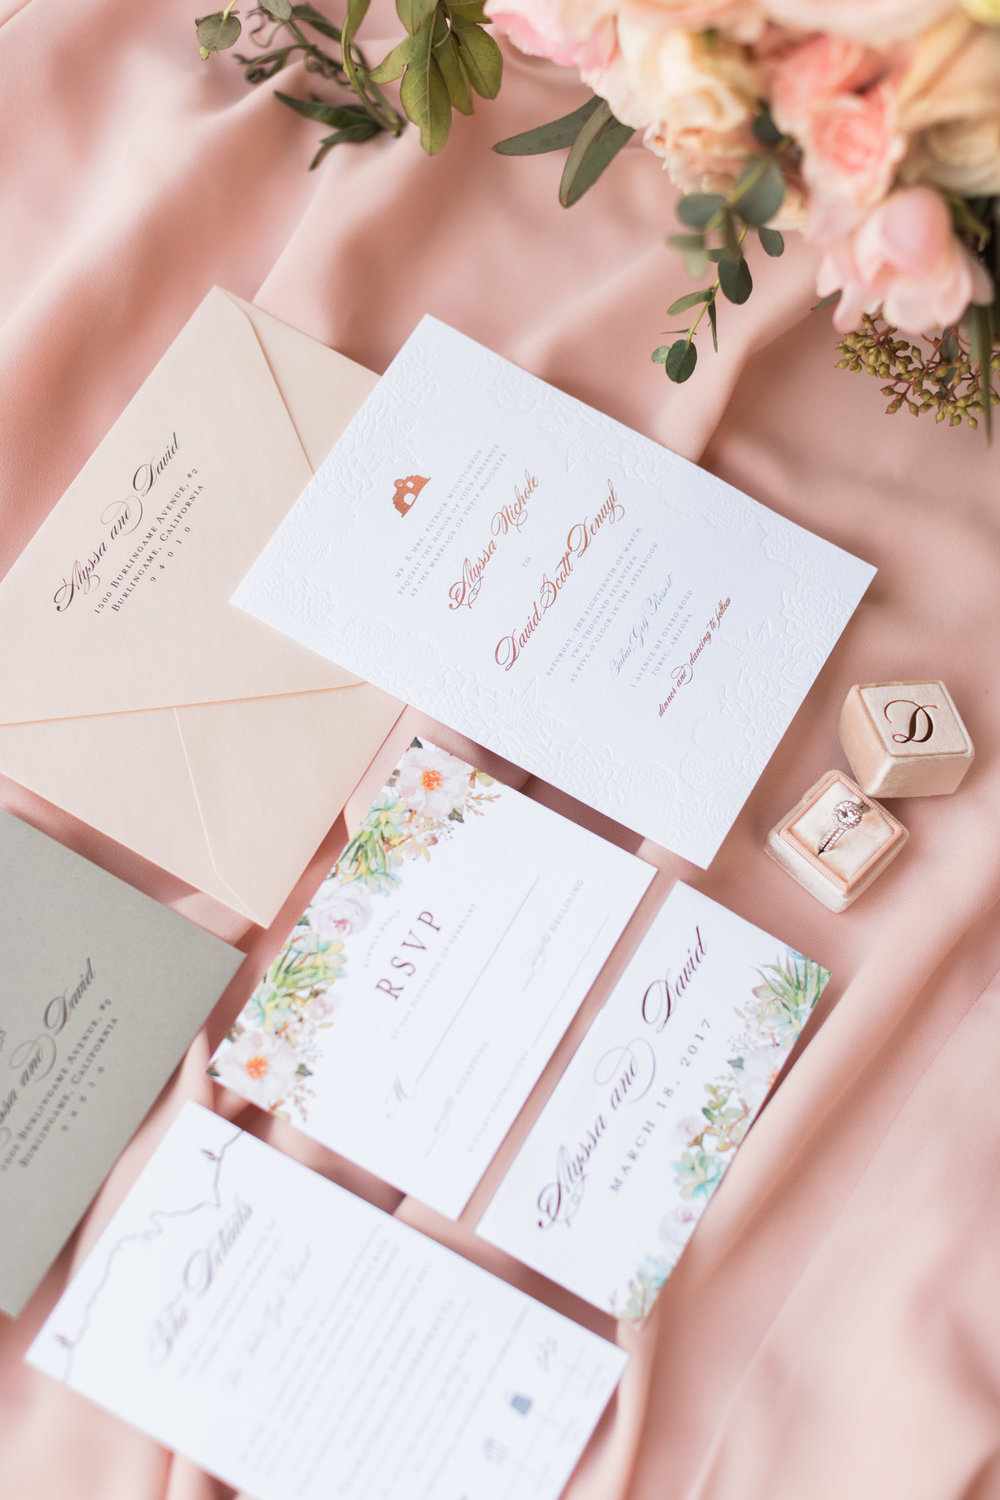 Stunning desert wedding invitations designed by Brie Dumais Designs